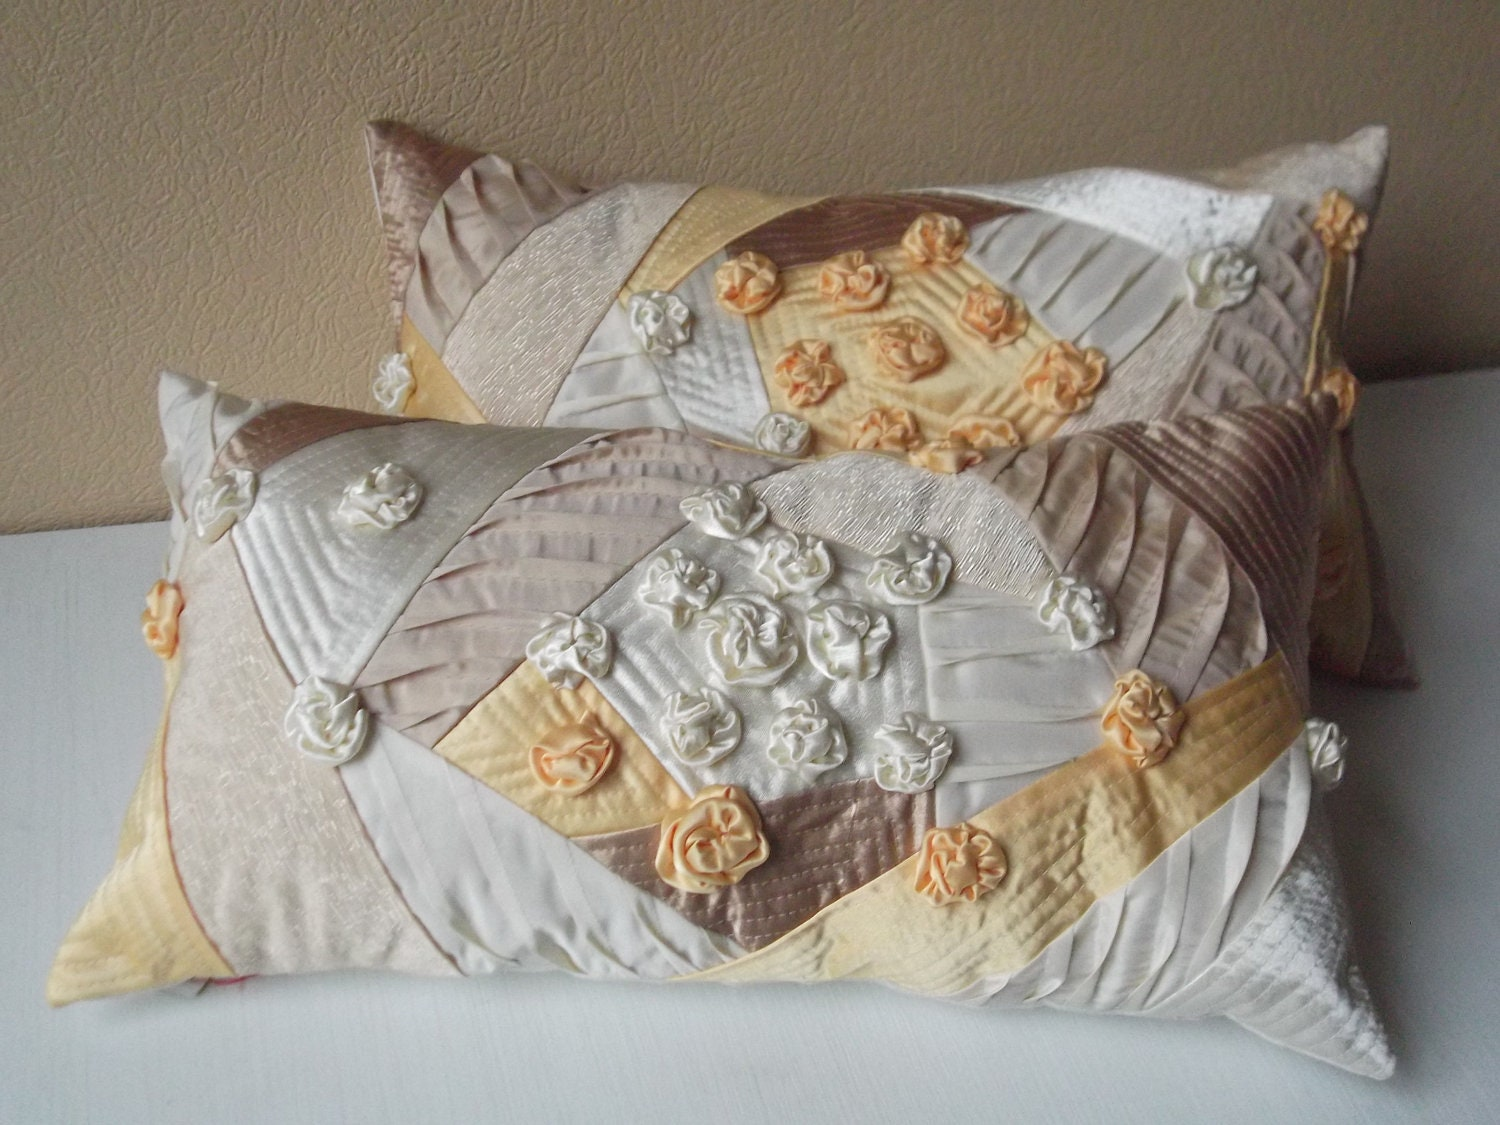 Throw Pillows Horchow : Throw pillows with handmade roses yellow beige ivory